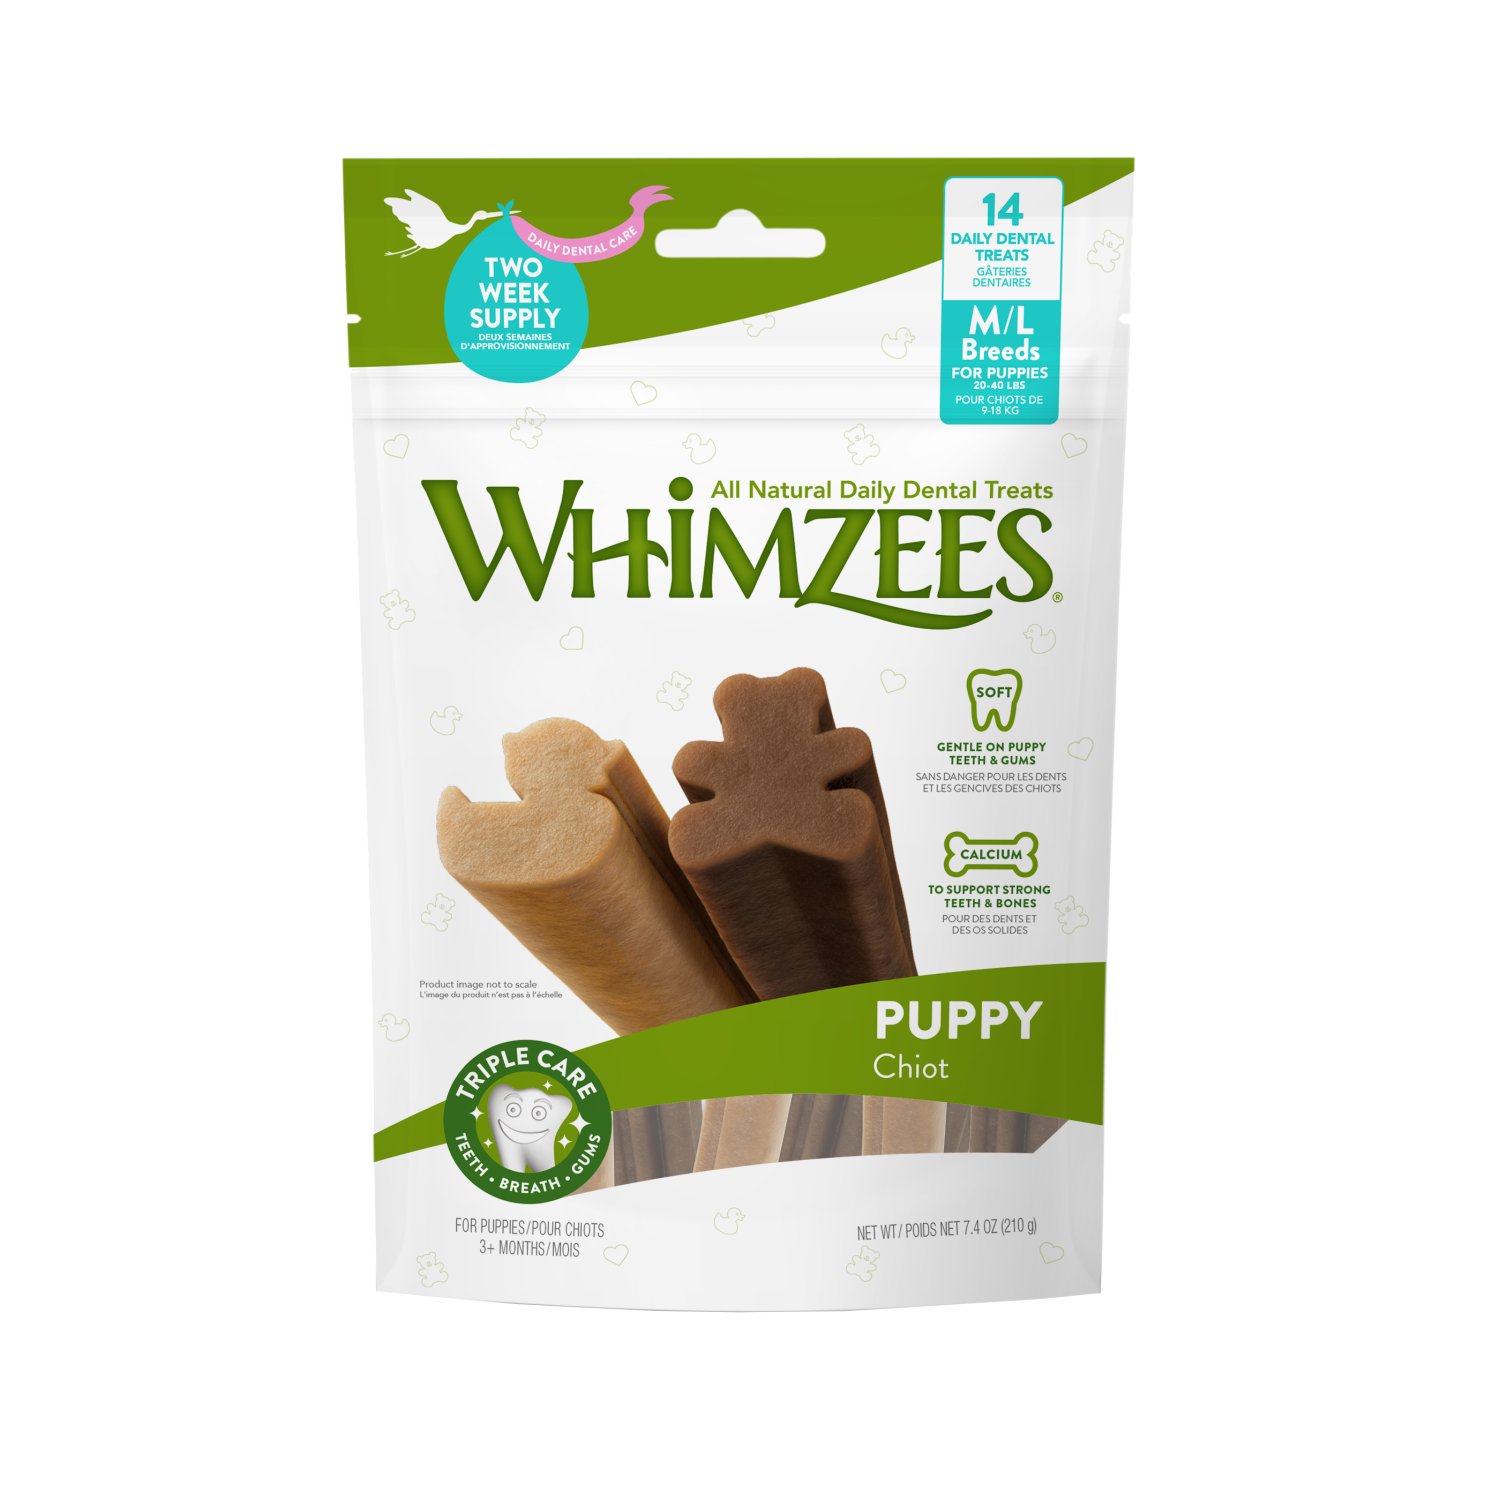 Whimzees puppy bag